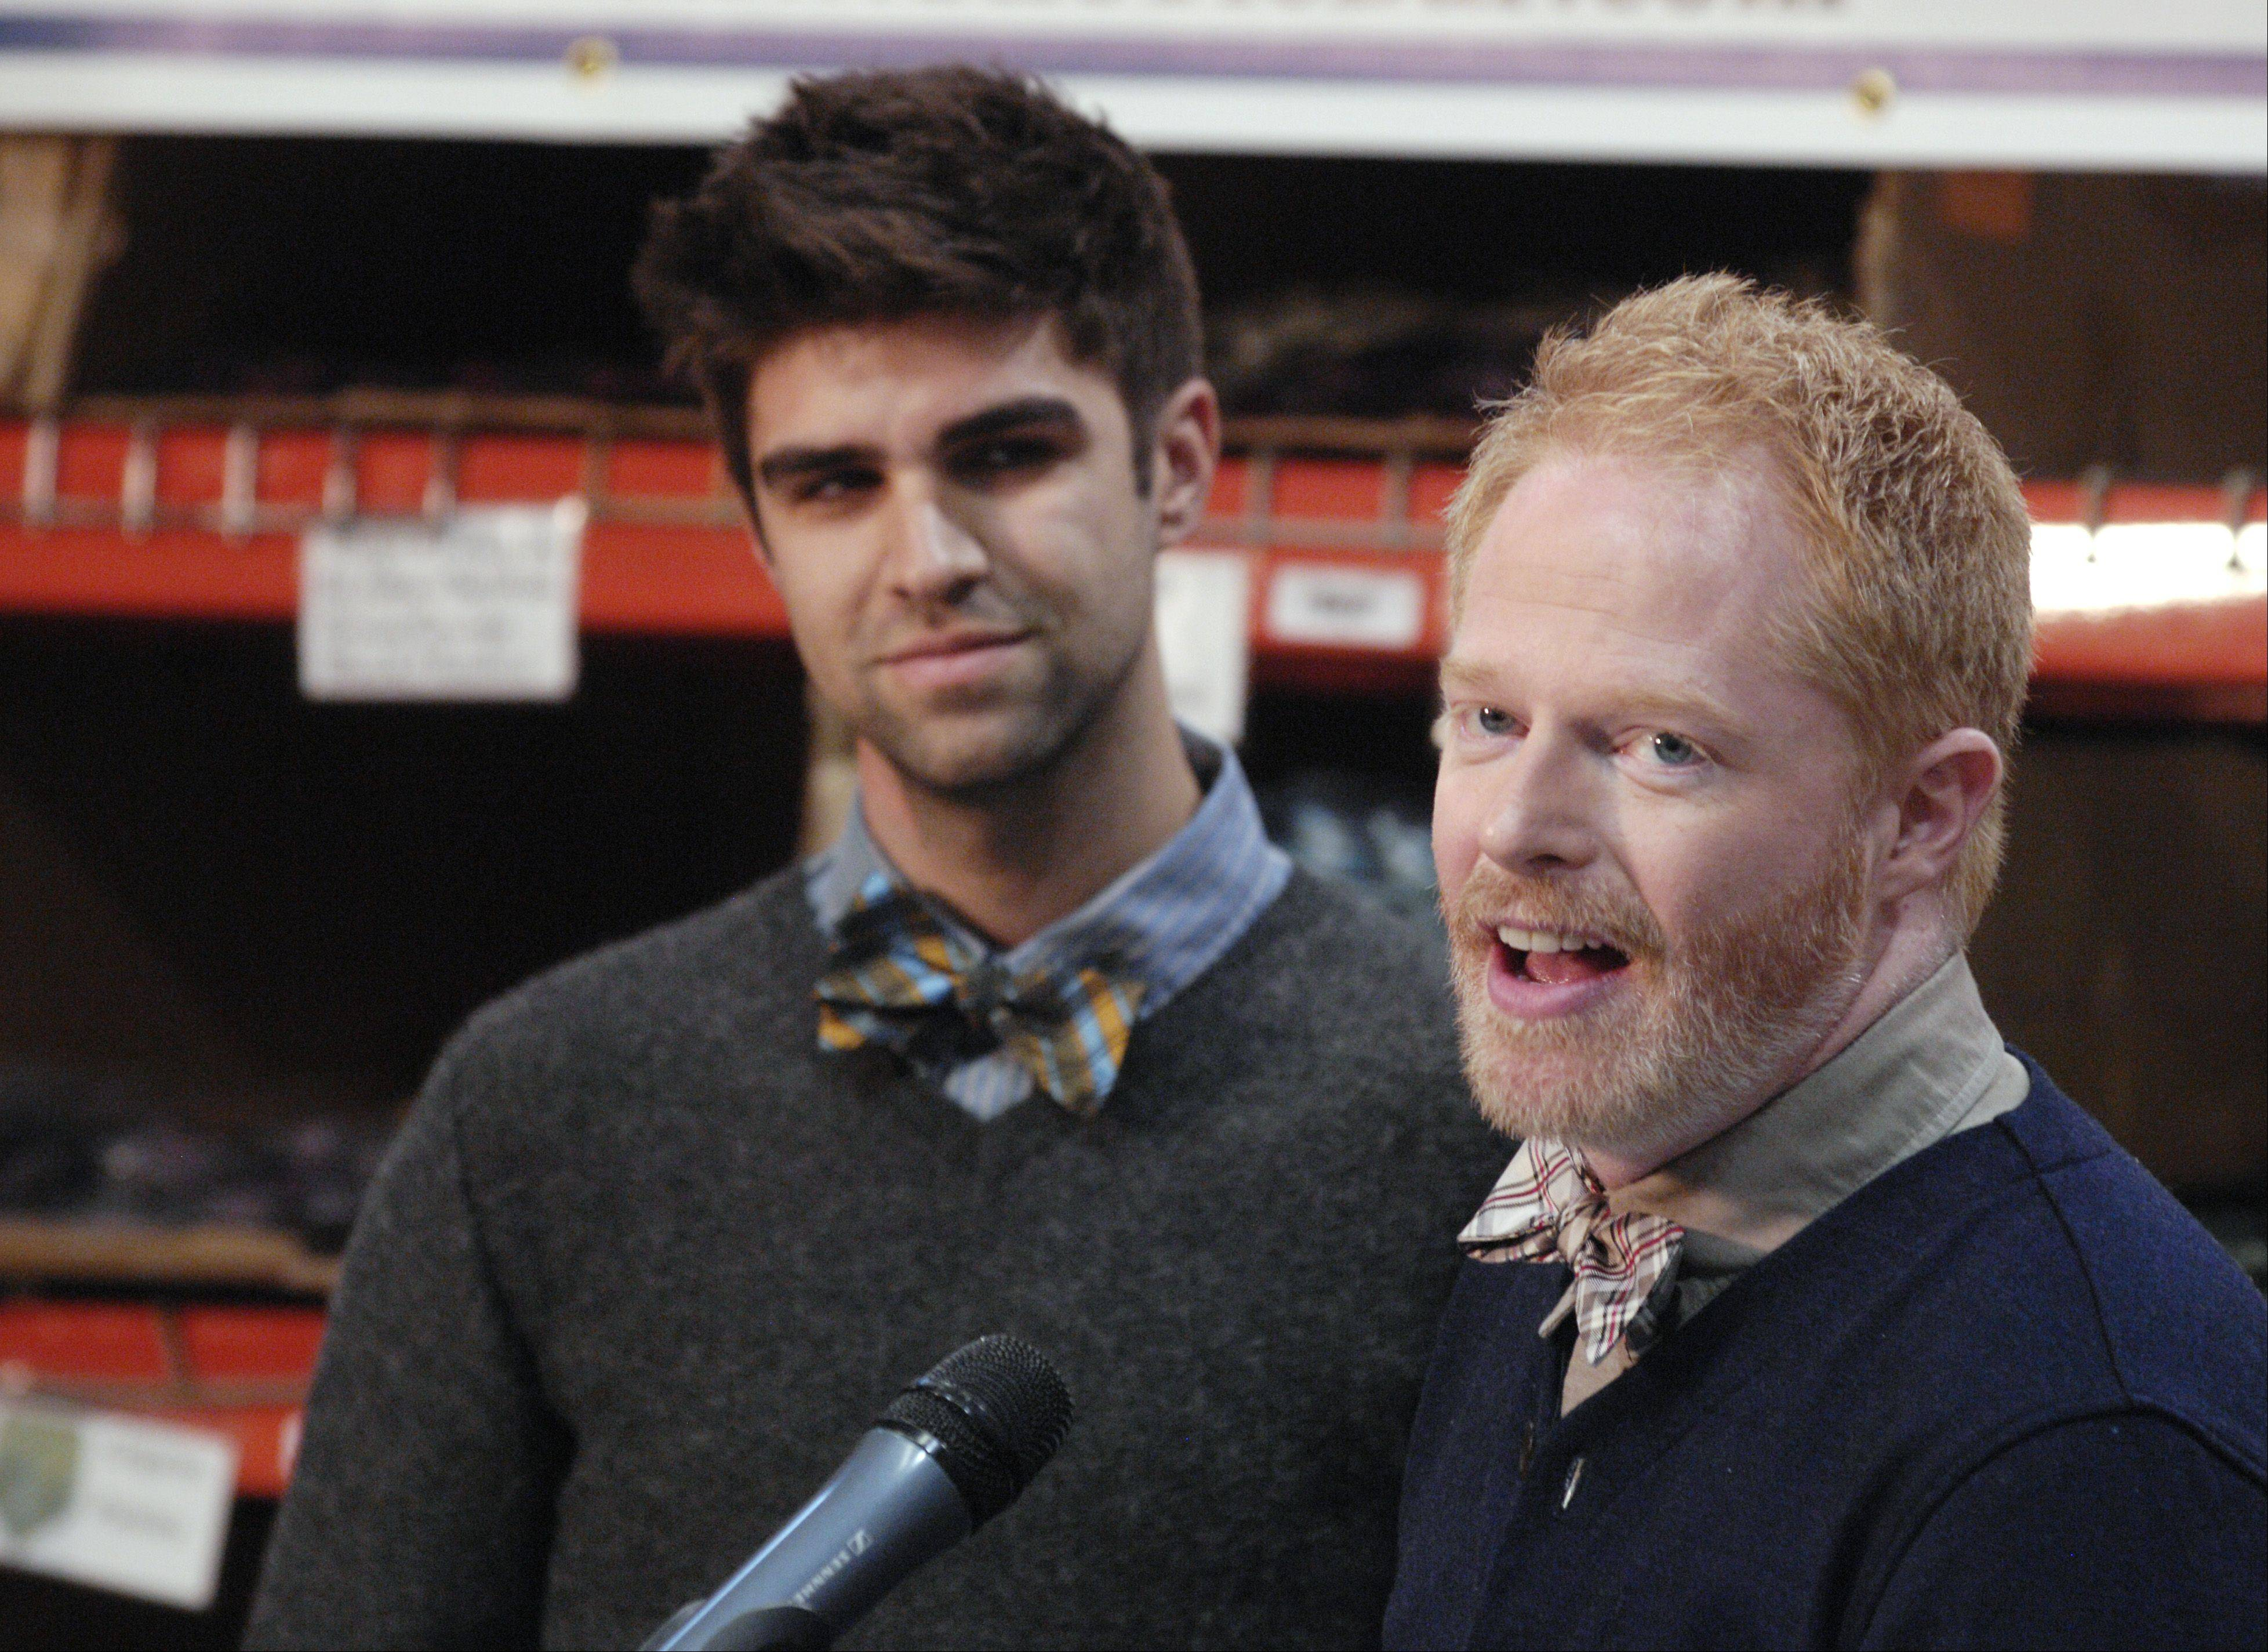 "Jesse Tyler Ferguson, a star on ABC's ""Modern Family,"" will be honored at the VH1 Do Something Awards for his organization Tie the Knot, which he founded with his fiancee Justin Mikita. He was in Naperville earlier this year to launch Bow Tie Lobby Day to support marriage equality."